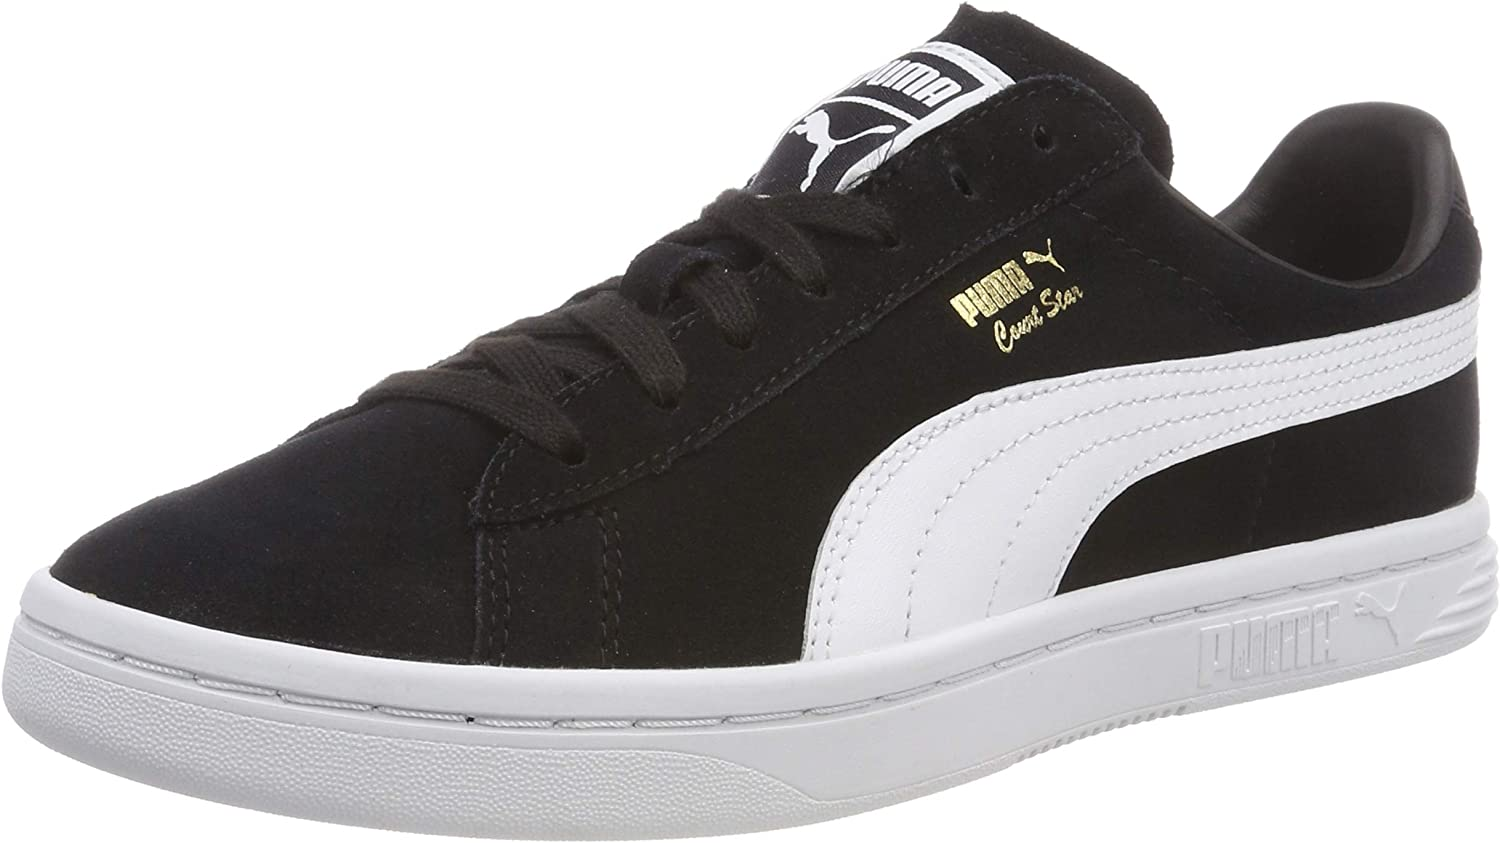 PUMA Court Star Fs, Sneakers Basses Mixte Adulte